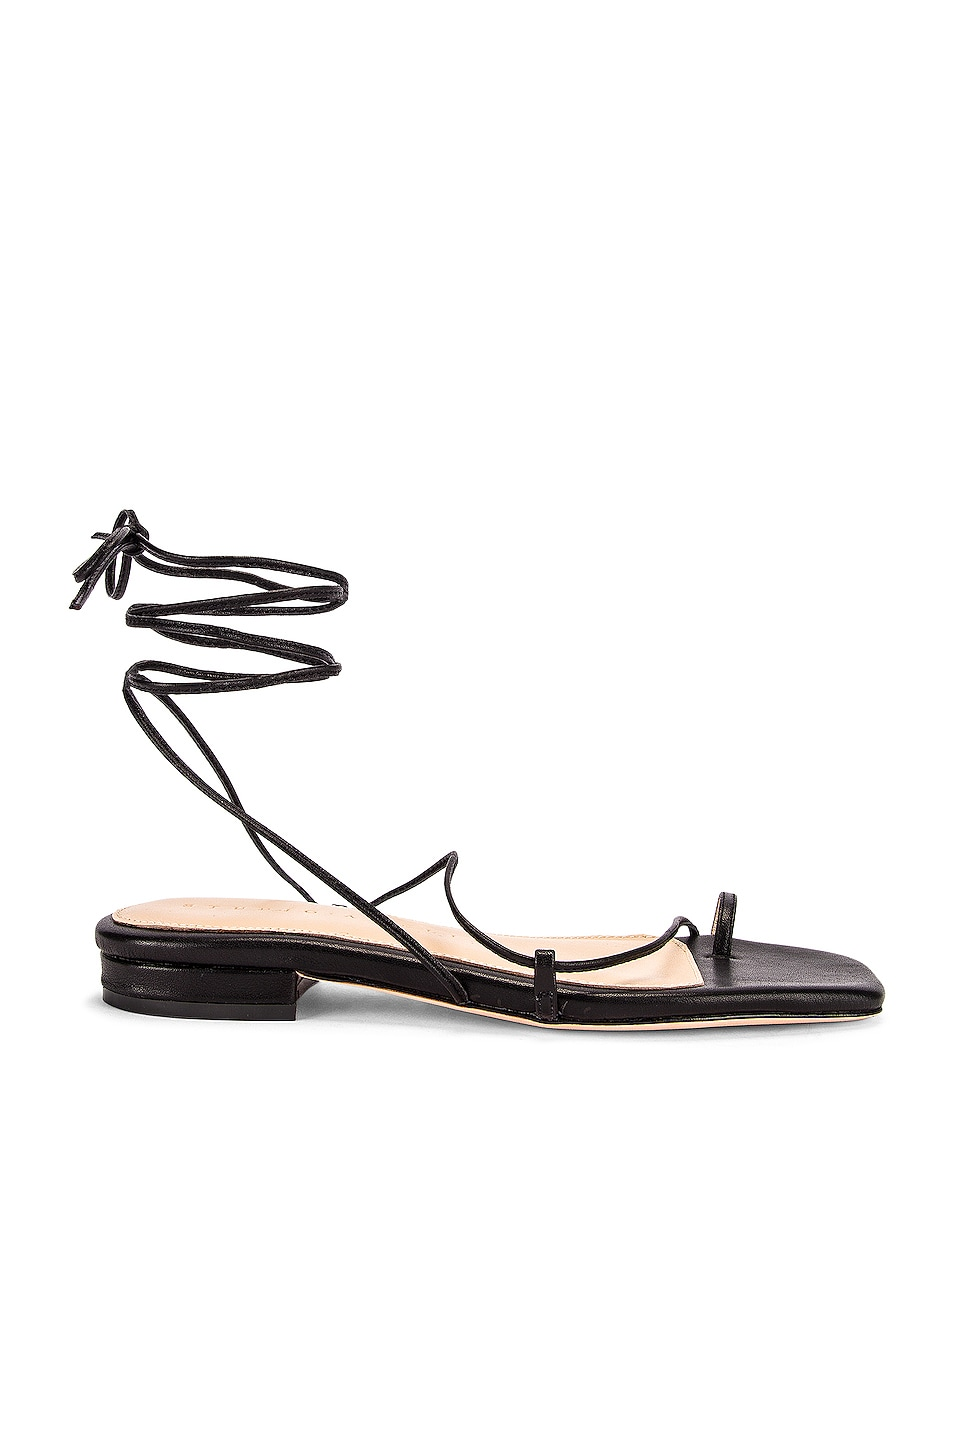 Image 1 of Studio Amelia 1.1 Sandal in Black